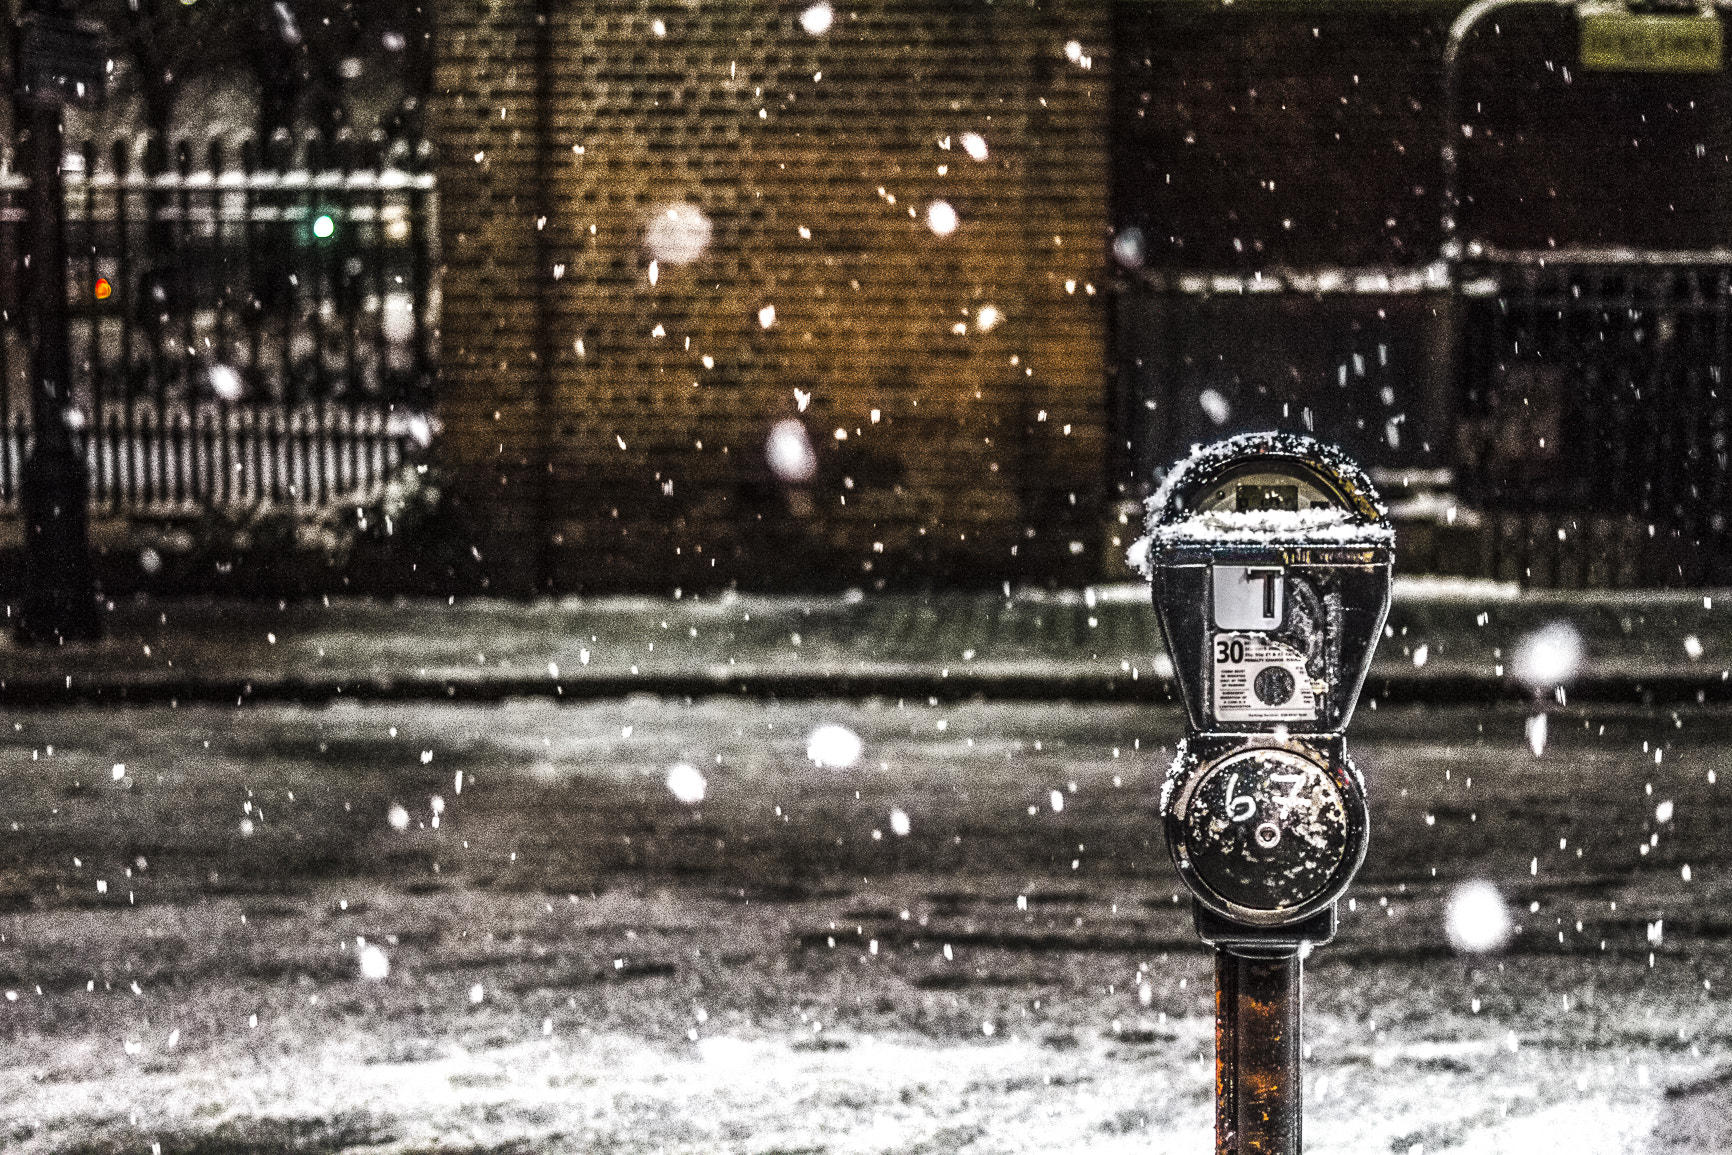 Photograph The Parking Meter still continues counting... by Victor Alexandre on 500px